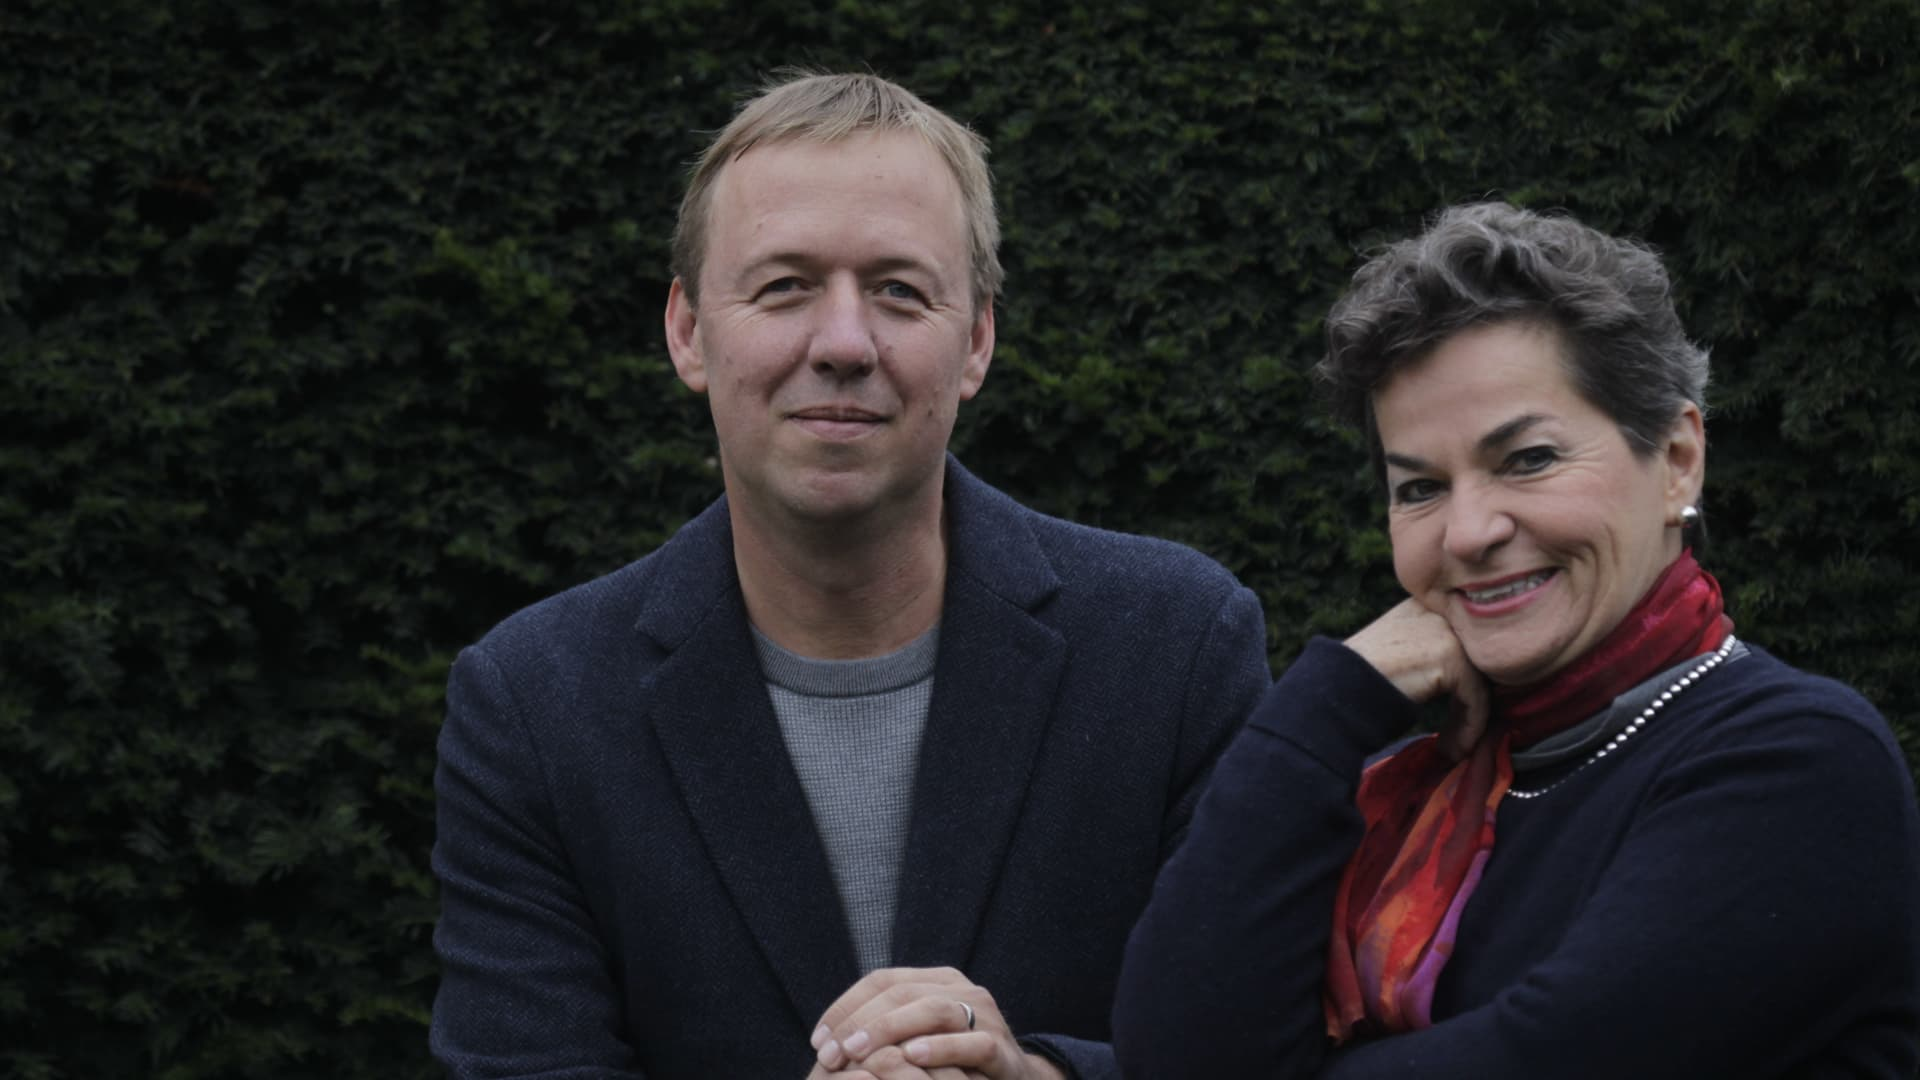 Tom Rivett-Carnac and Christiana Figueres, co-founders of Global Optimism